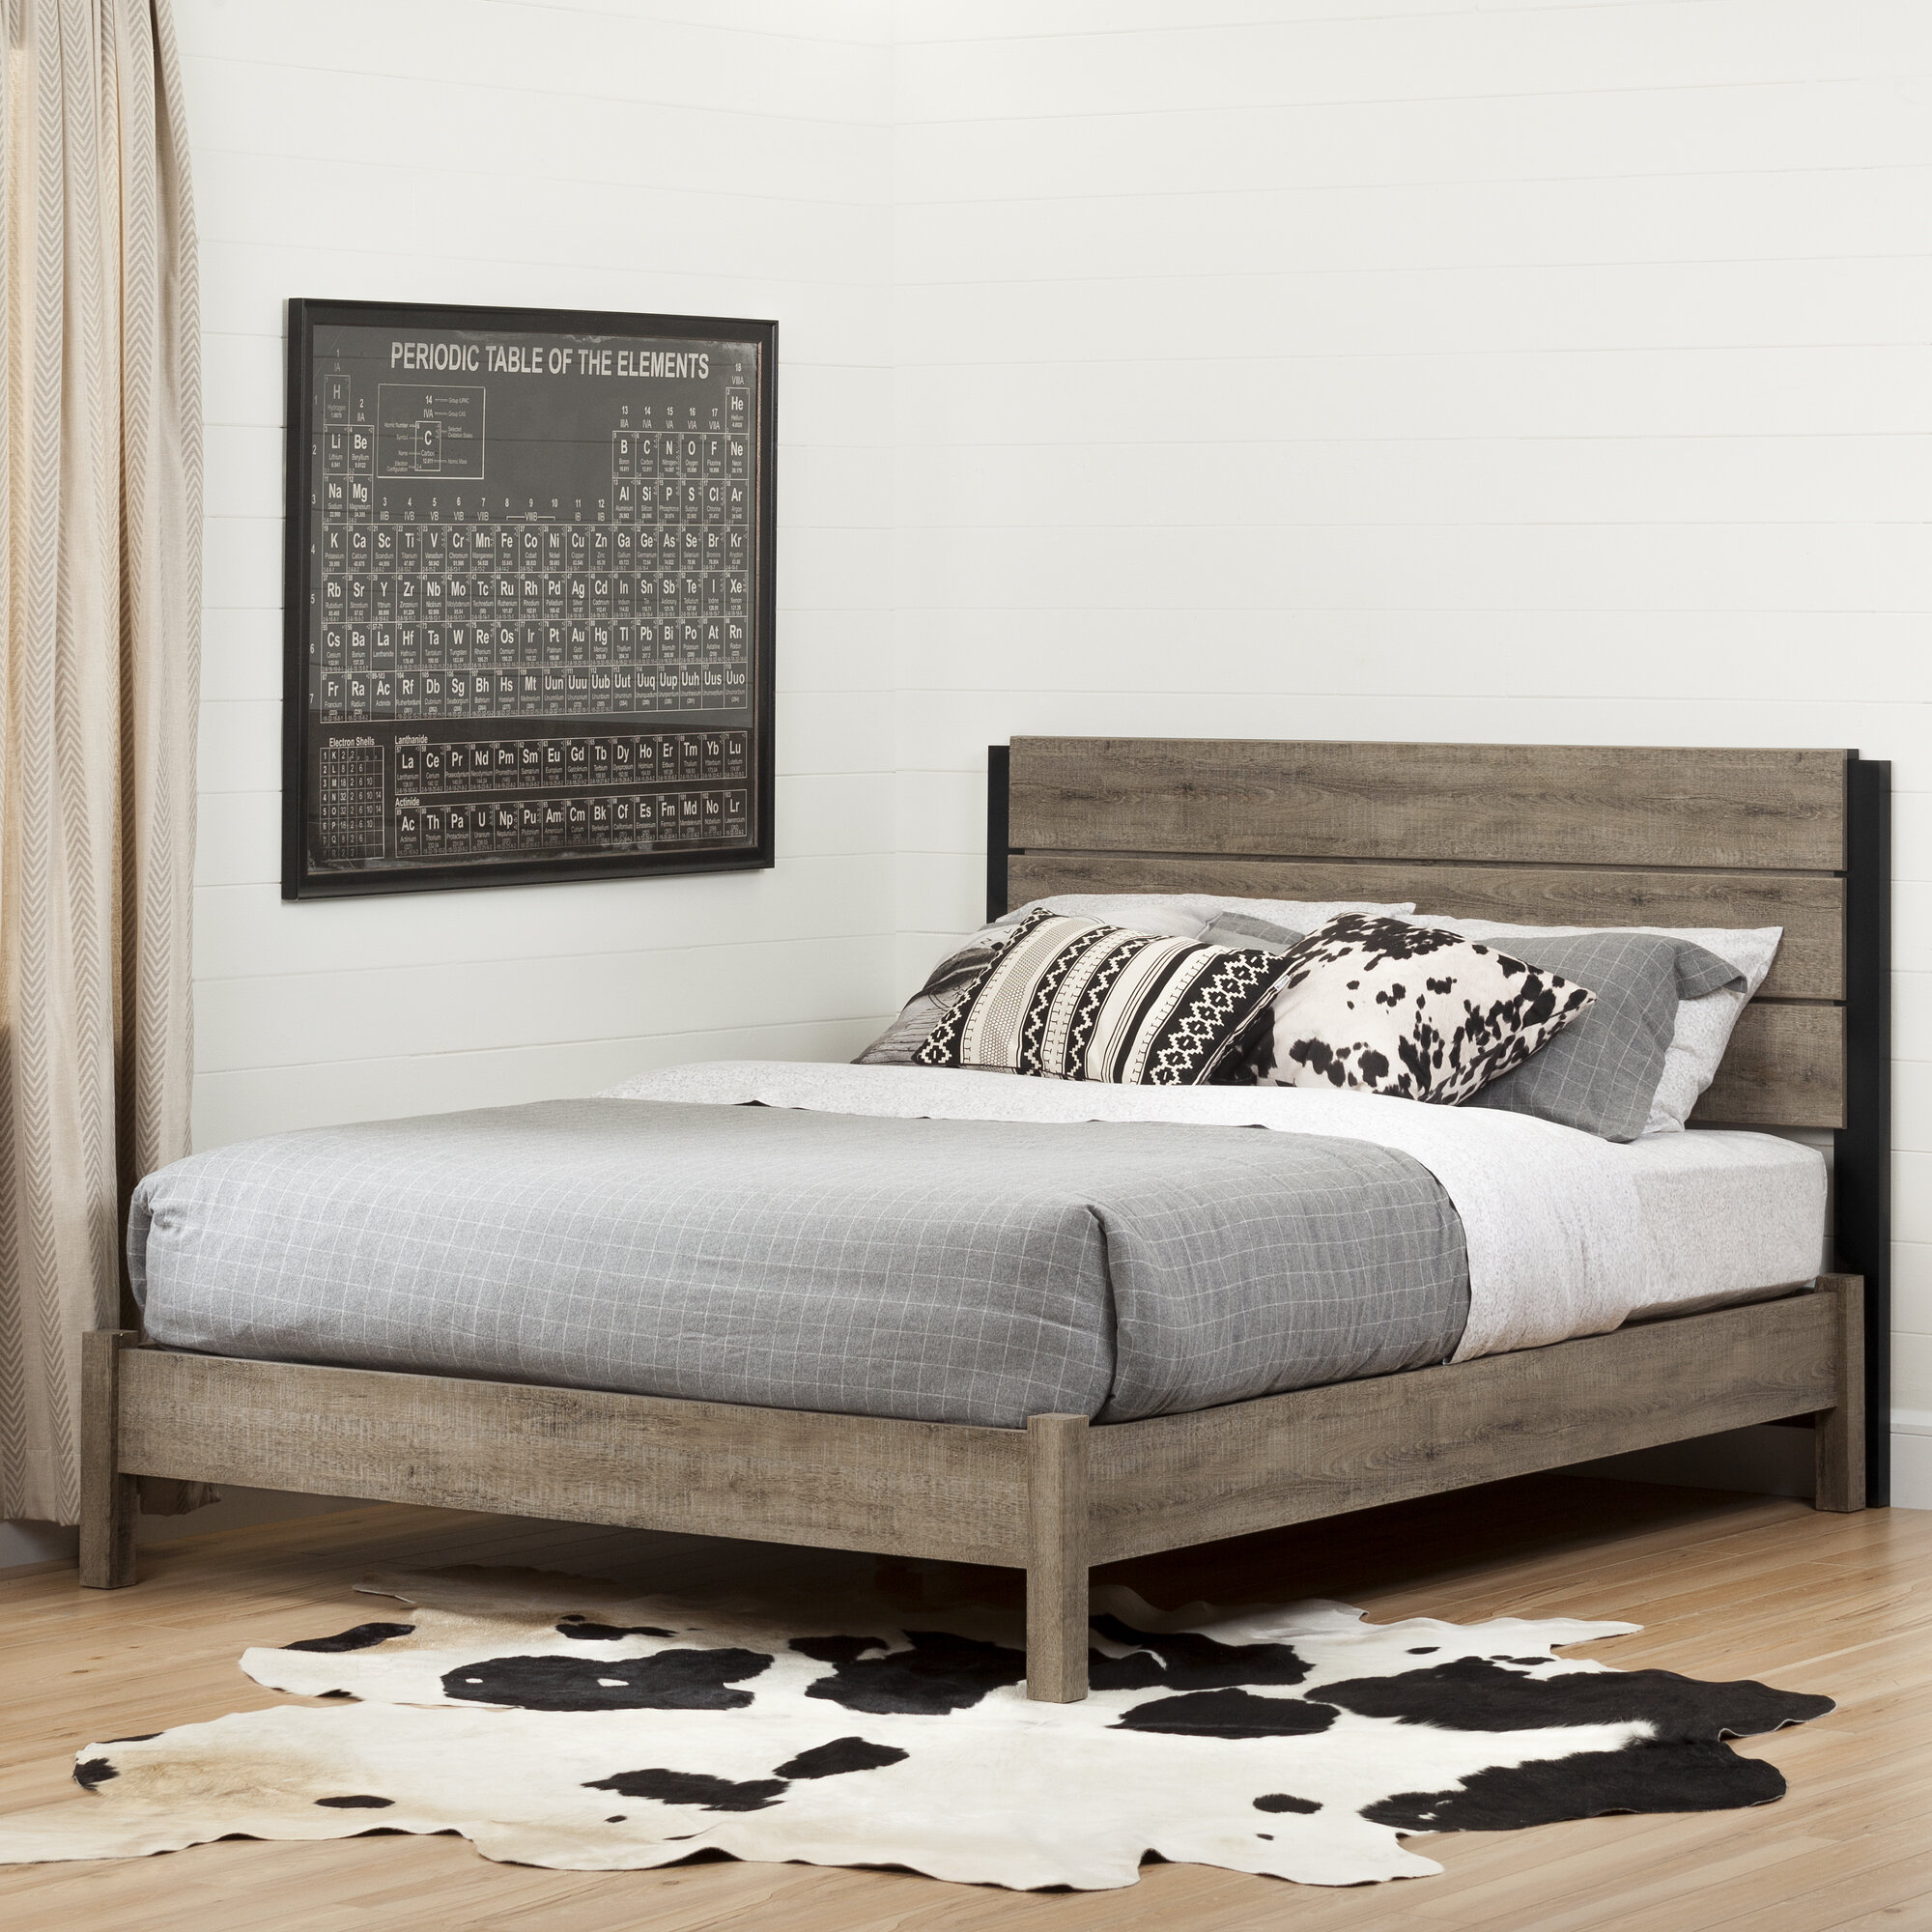 headboard trends bedroom with gallery astounding bed design of pictures beds size modell incredible stunning interior platform storage drawers elegant queen the picture and best used white